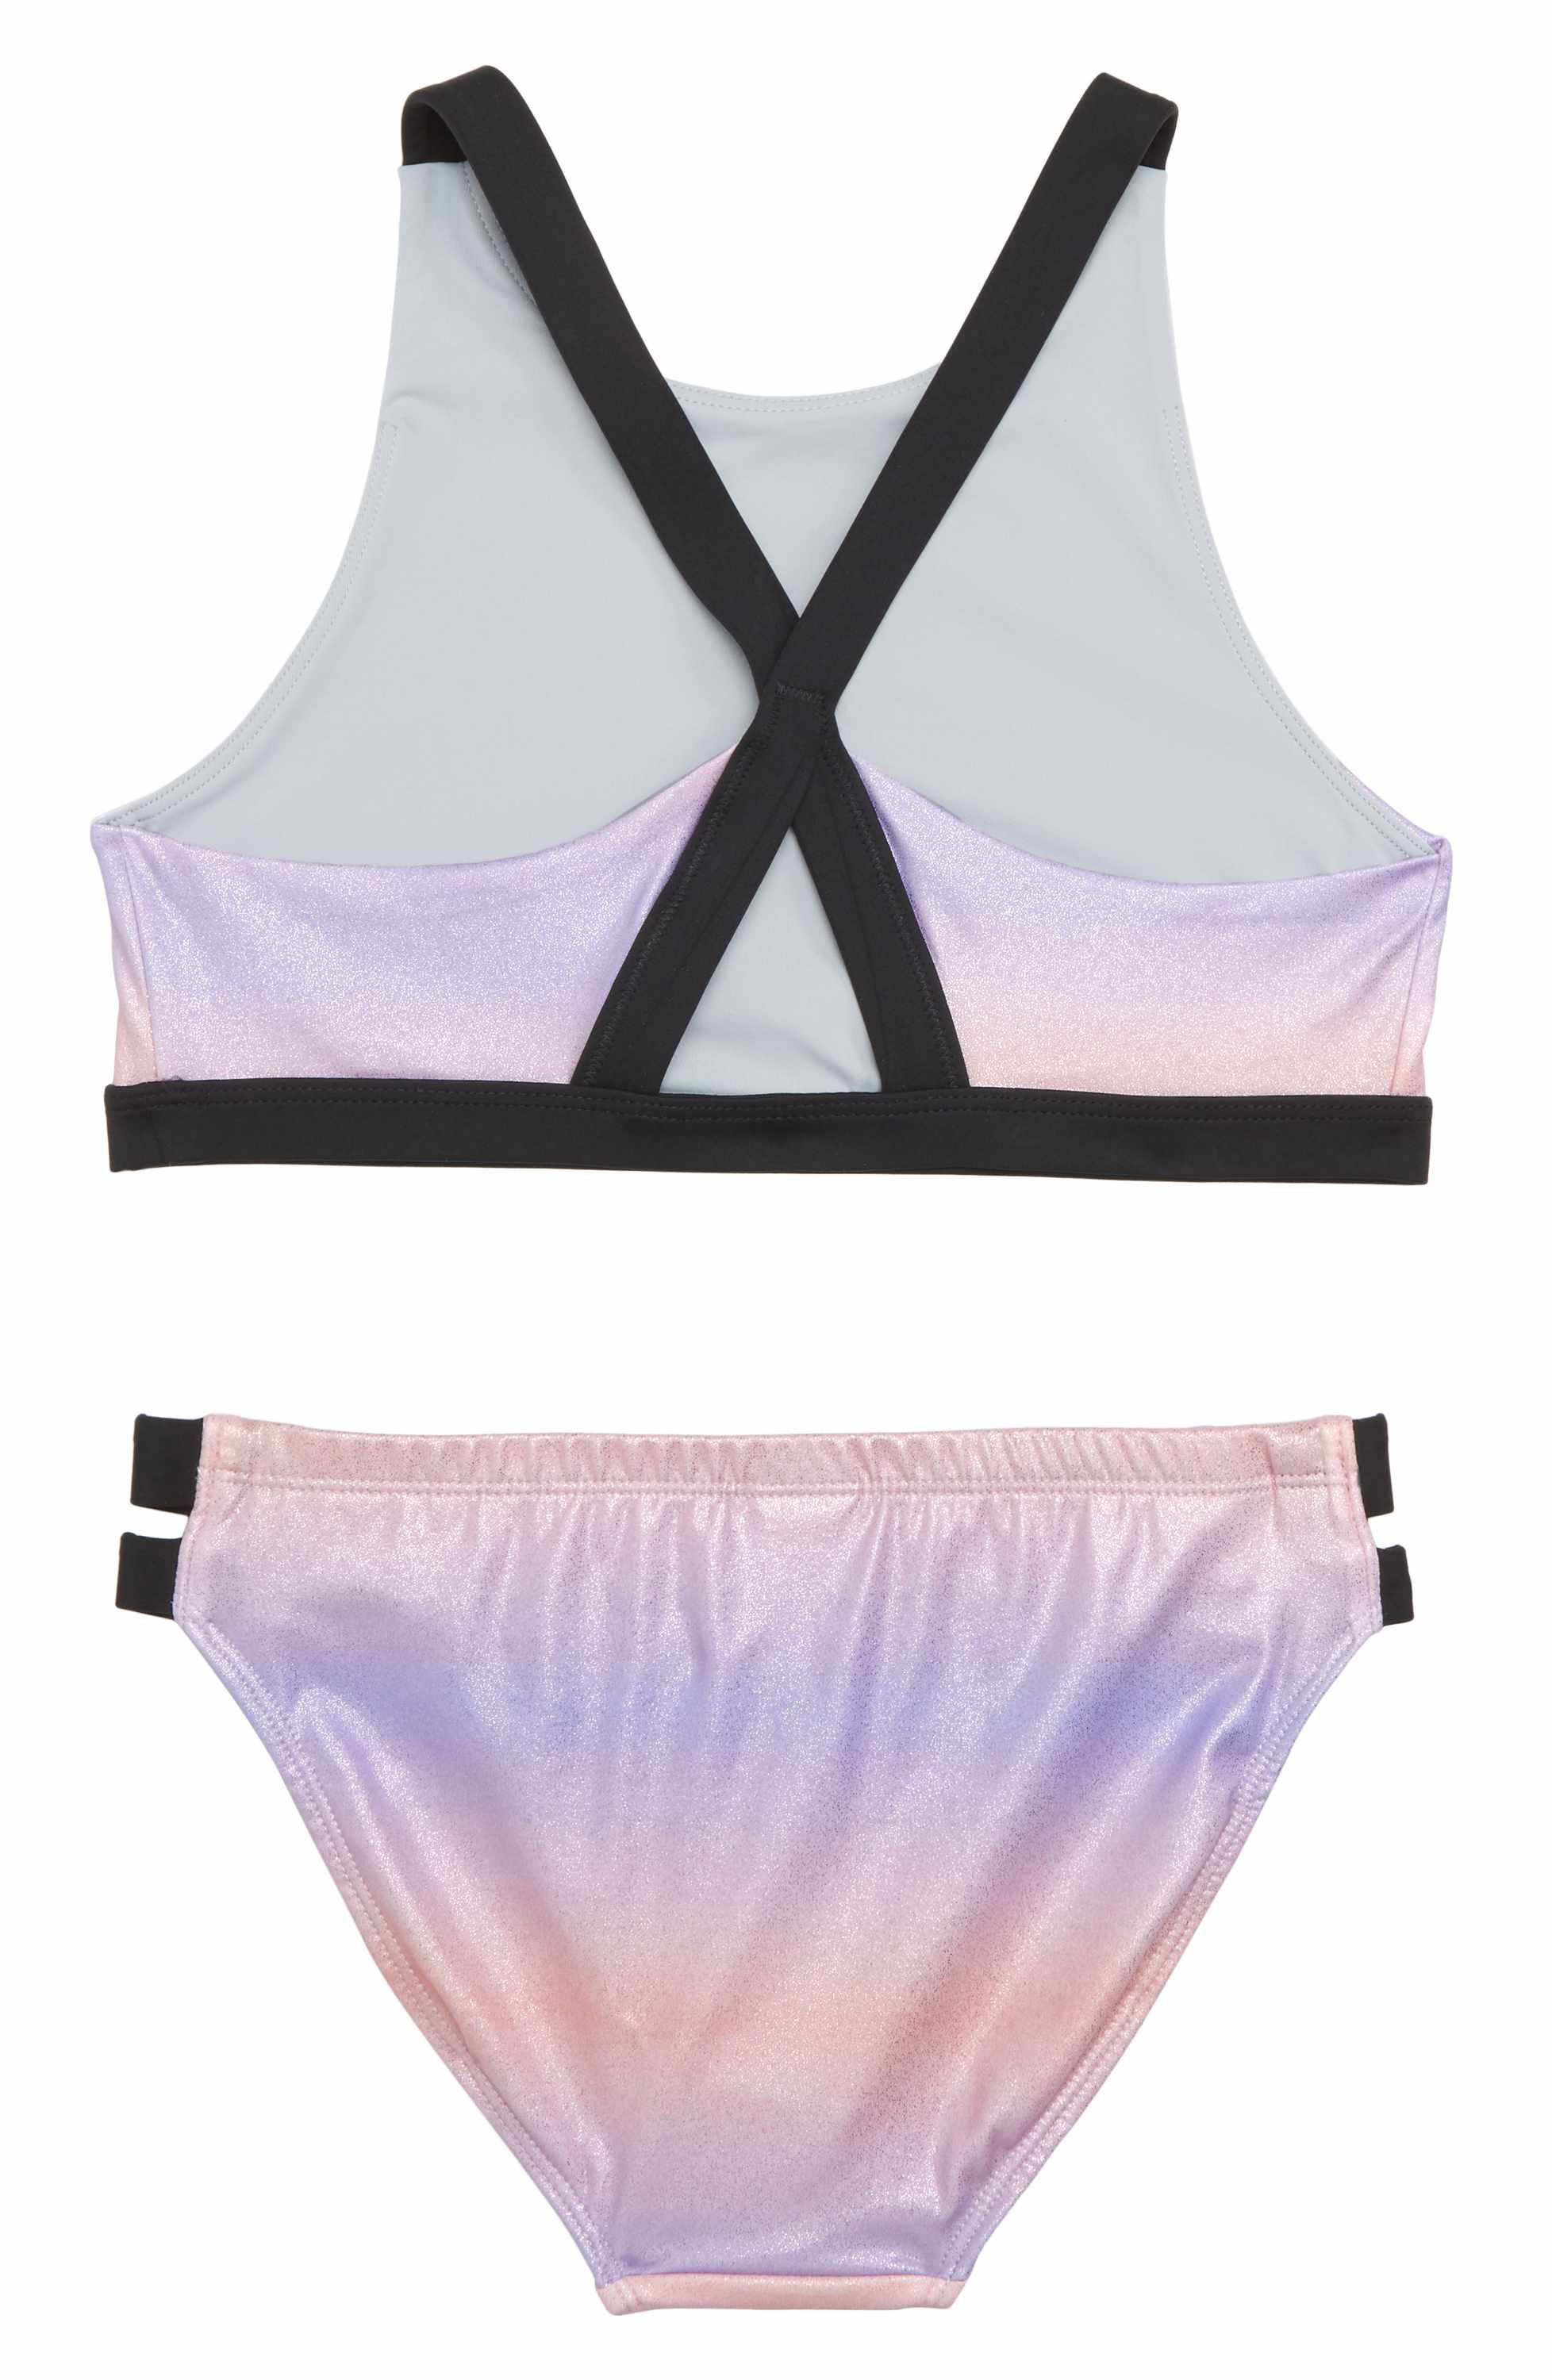 58f8bfb77adc0 Main Image - Zella Girl Strappy Sparkle Two-Piece Swimsuit (Big Girls)